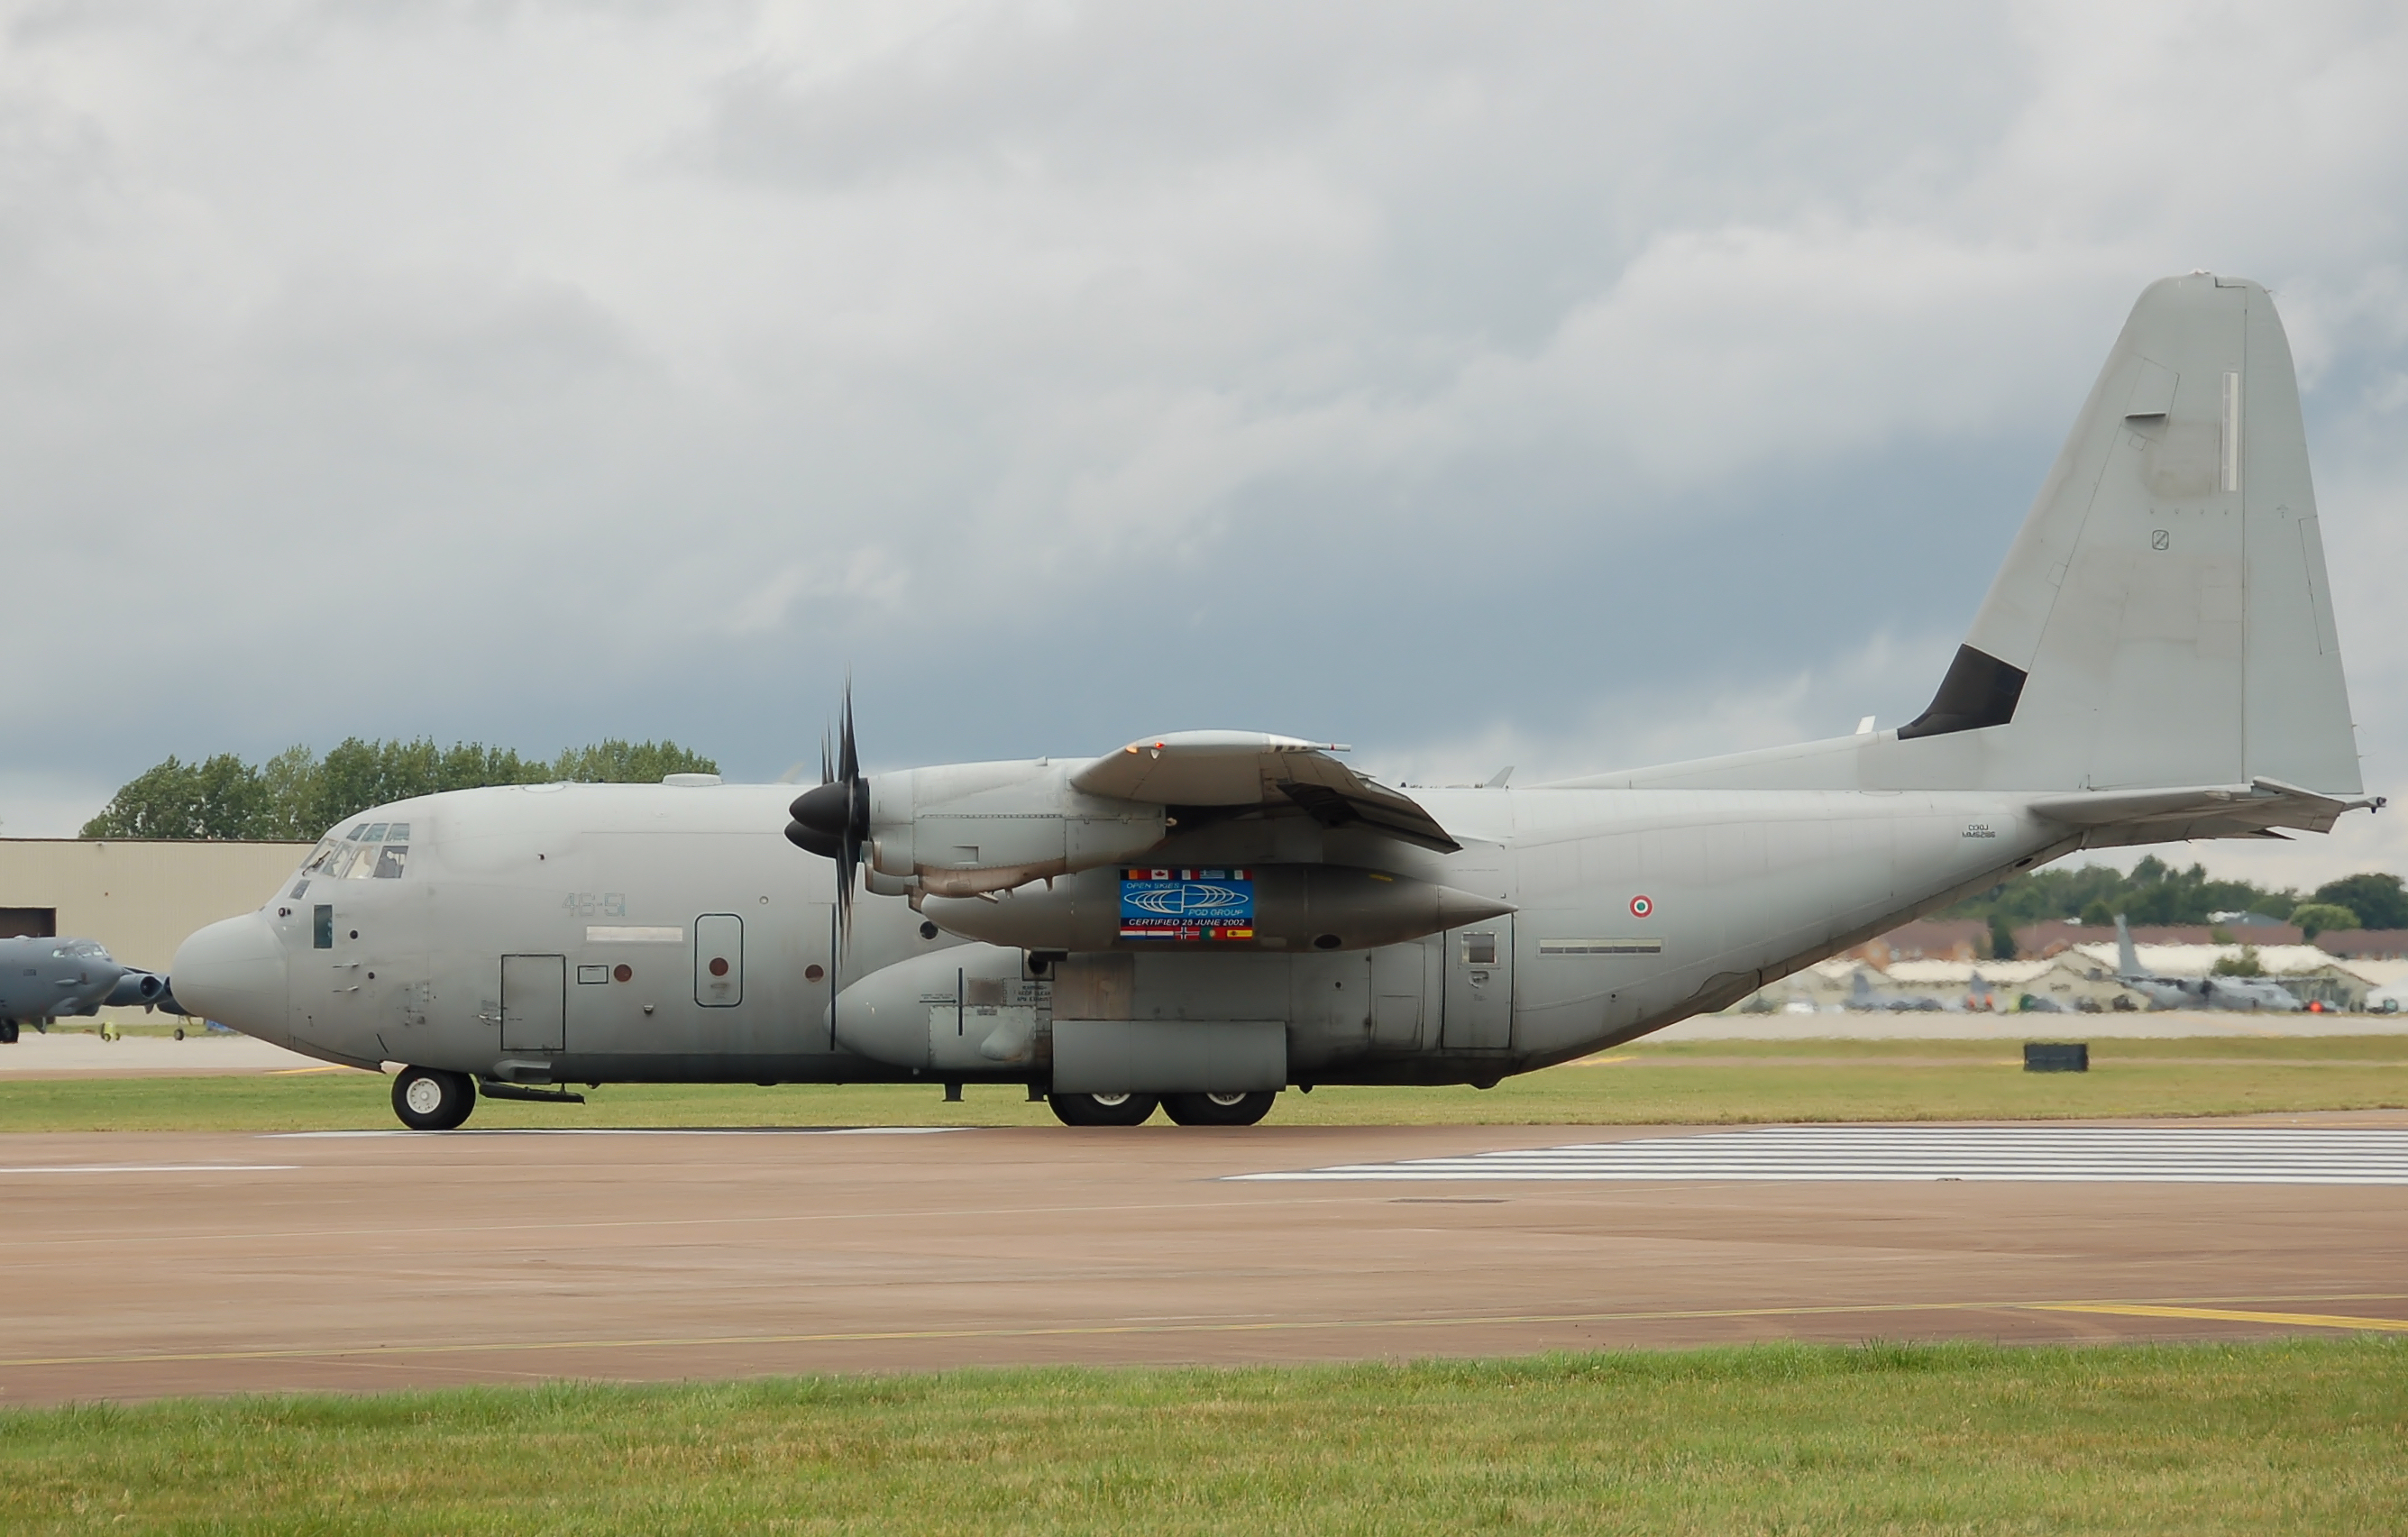 http://upload.wikimedia.org/wikipedia/commons/5/57/Italian_air_force_c-130j_fairford2009_arp.jpg